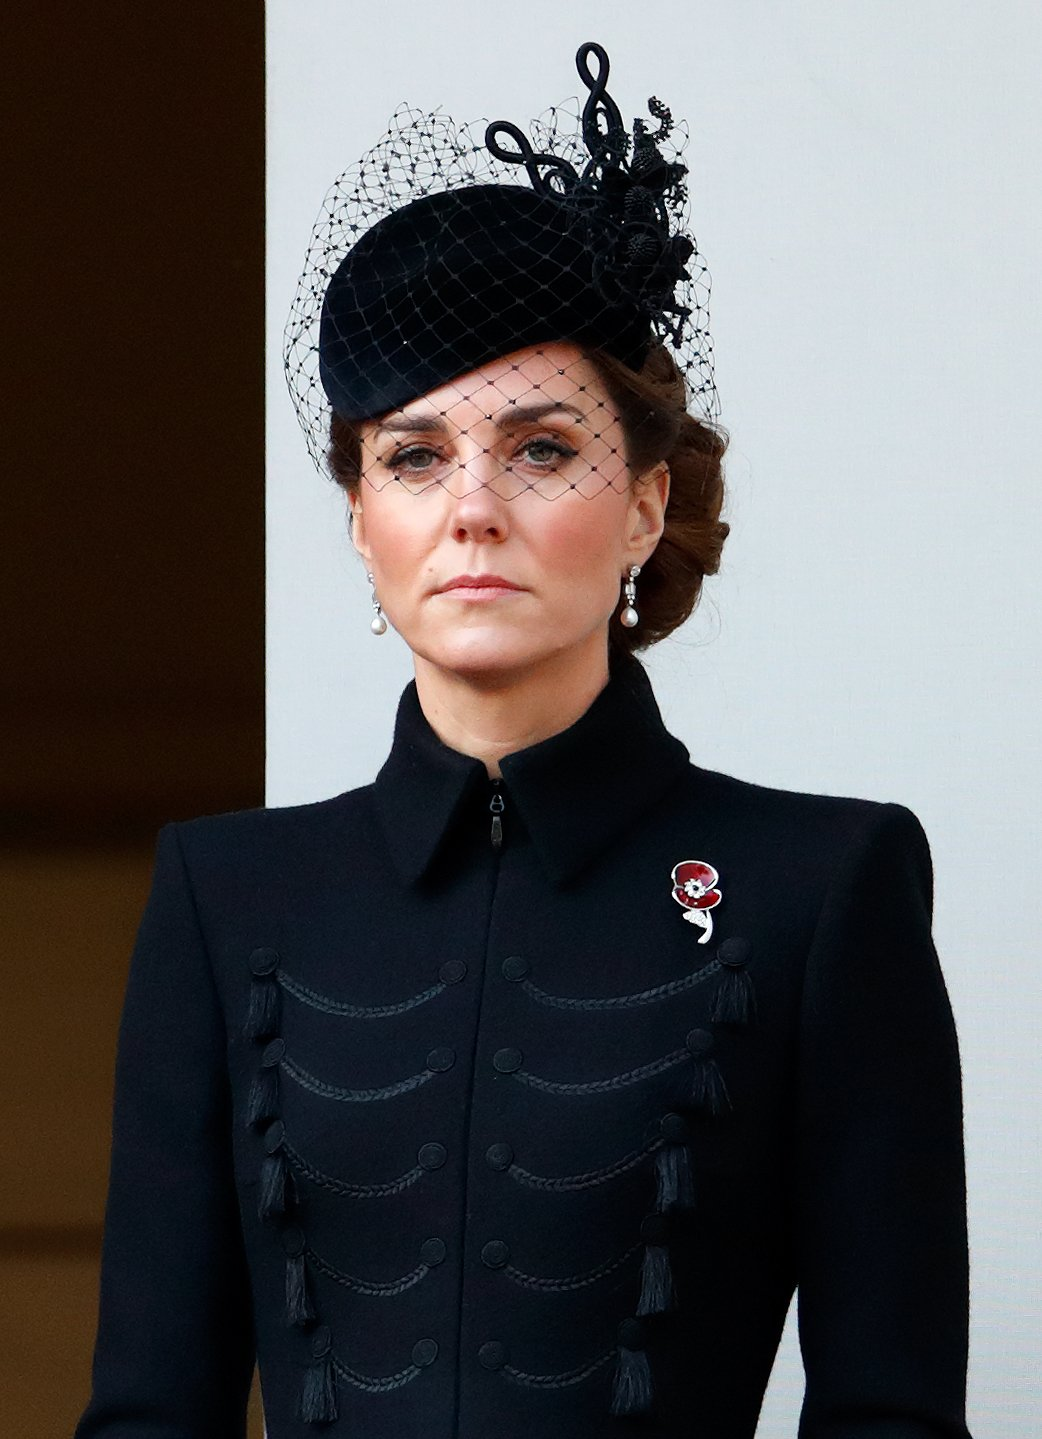 Kate Middleton attends the annual Remembrance Sunday service in London, England on November 10, 2019   Photo: Getty Images